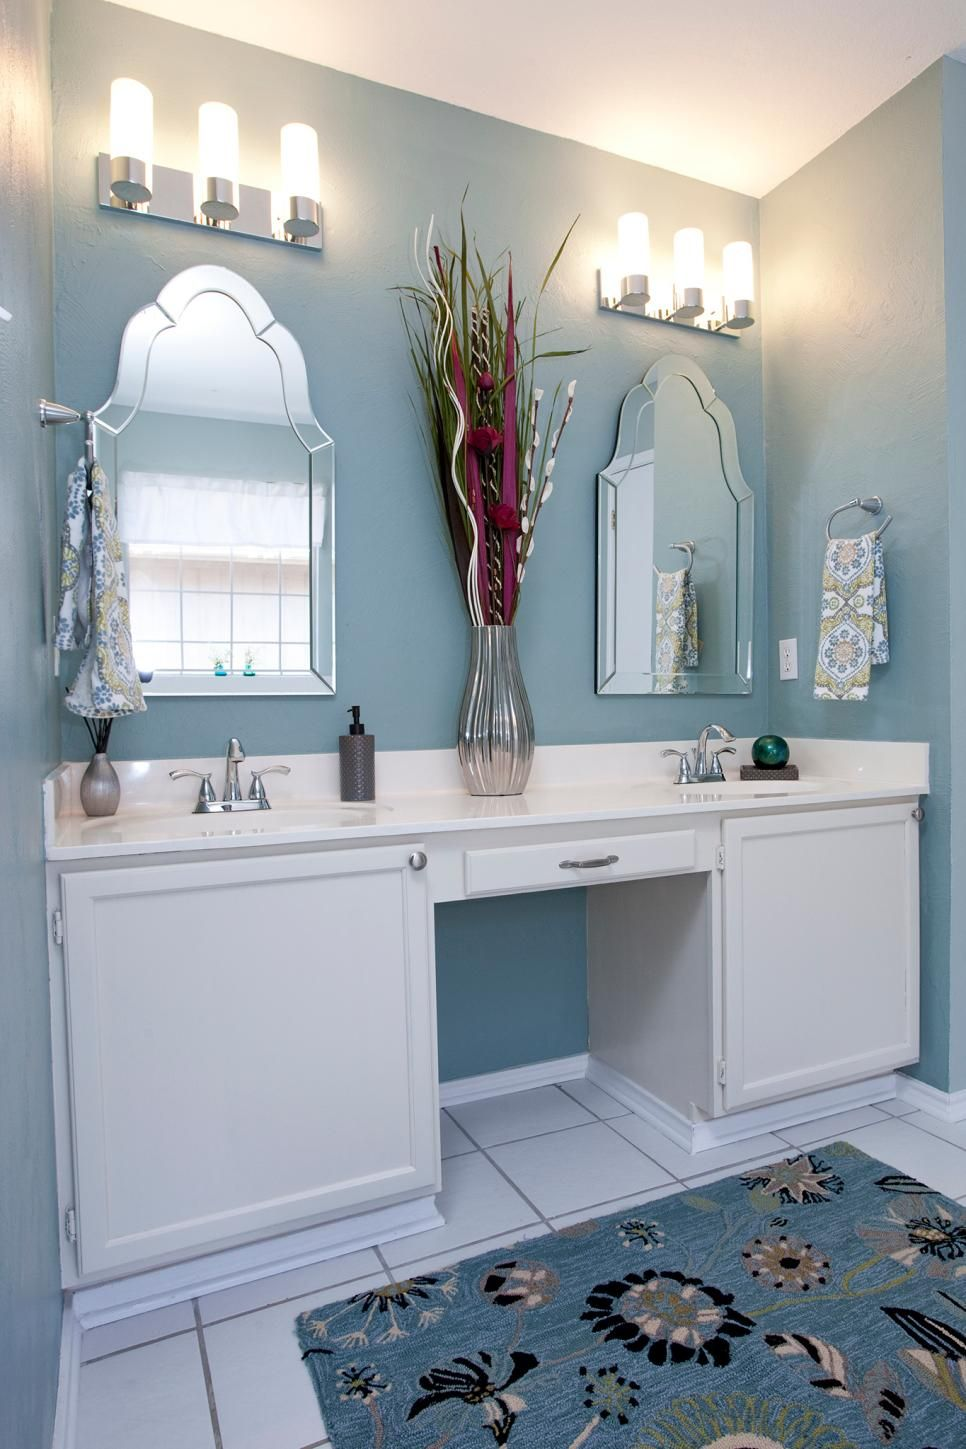 Easy Home Upgrades From HGTVs Buying And Selling Jonathan Scott - Renovate your own bathroom